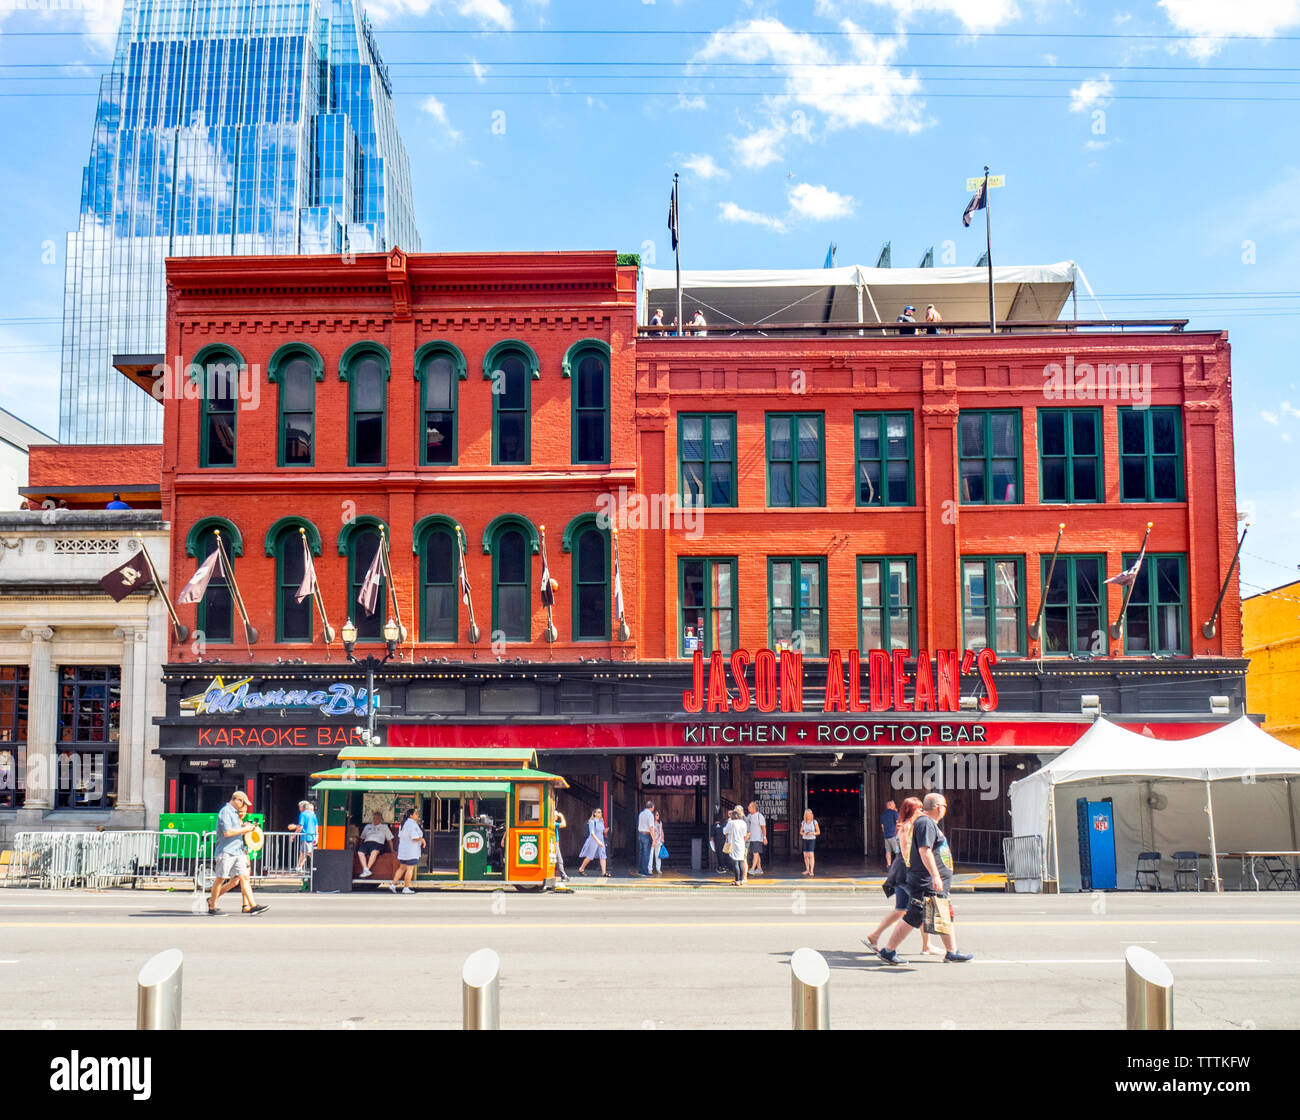 Jason Aldeans Kitchen Rooftop Bar And Restaurant And Concert Venue On Broadway During The Nfl Draft 2019 Nashville Tennessee Usa Stock Photo Alamy